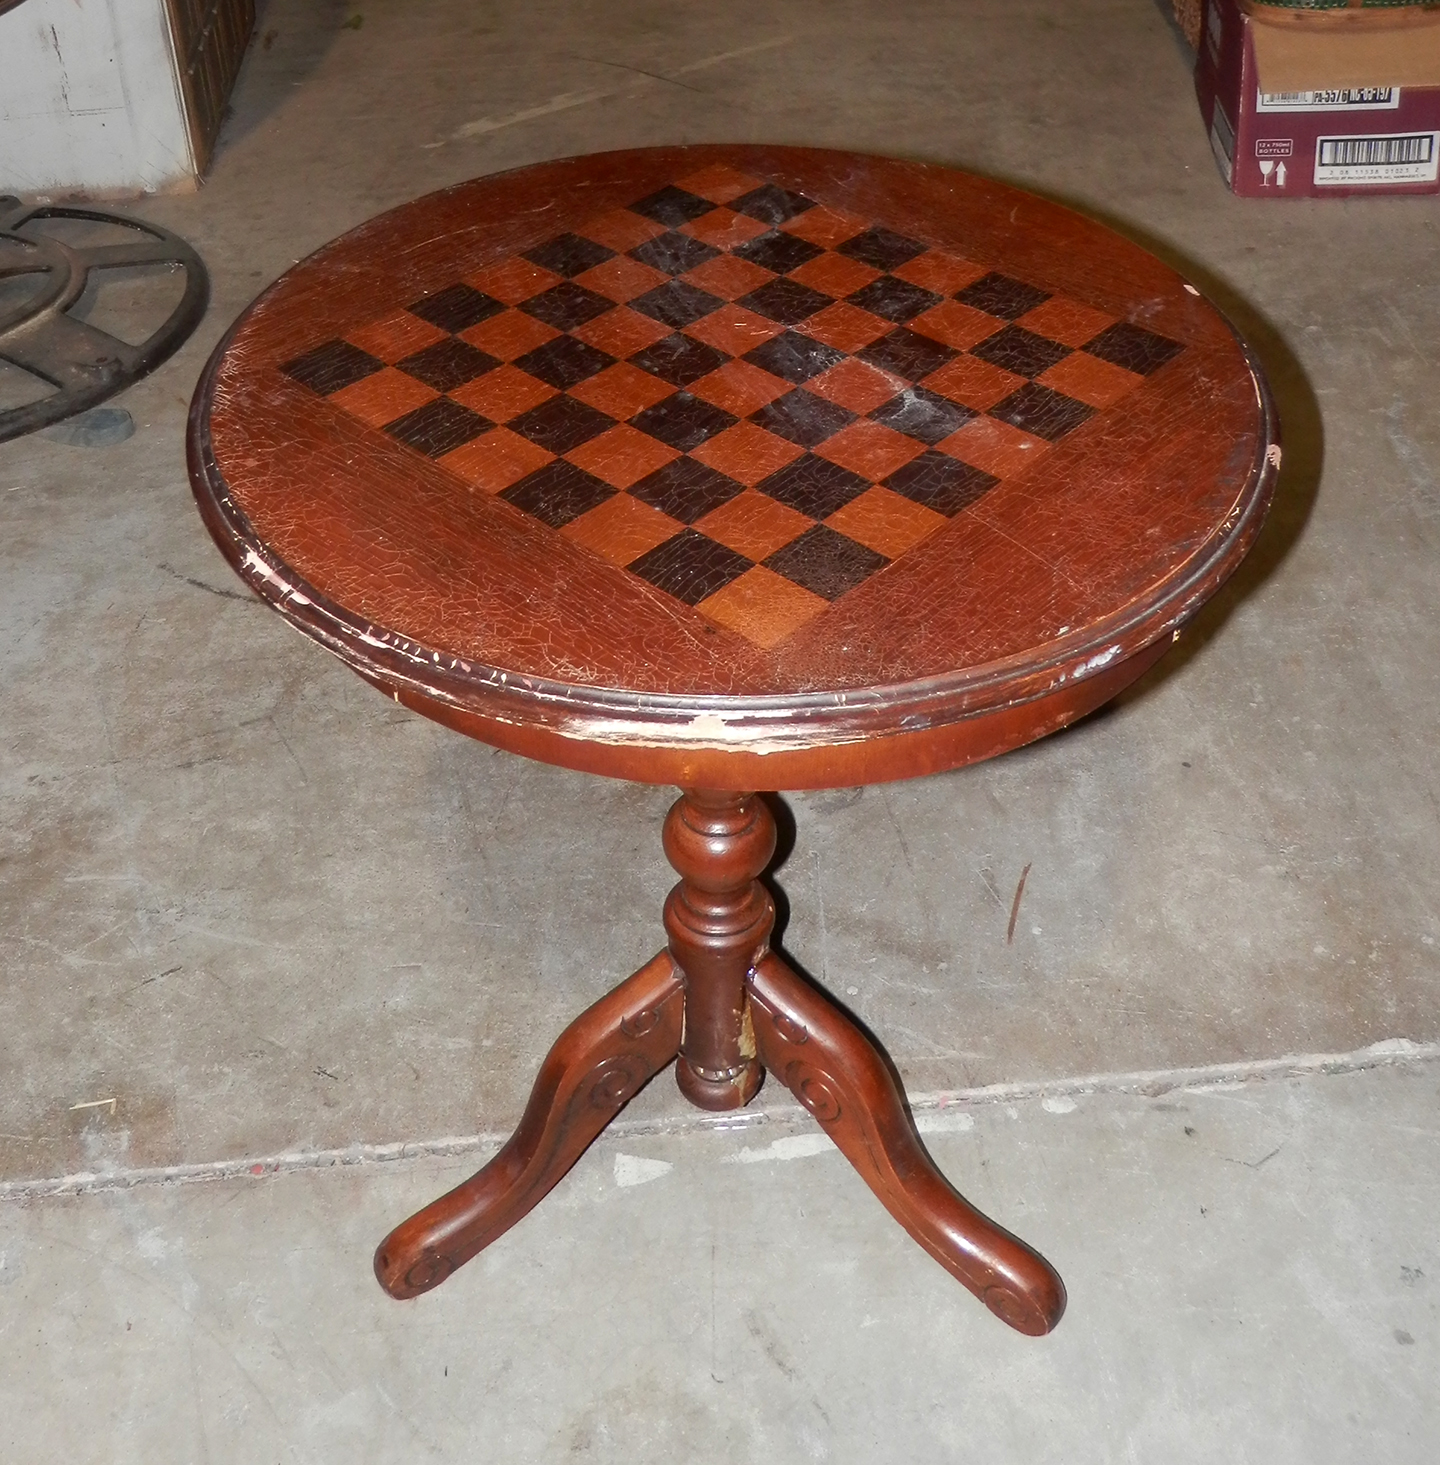 Chessboard Design Side Table